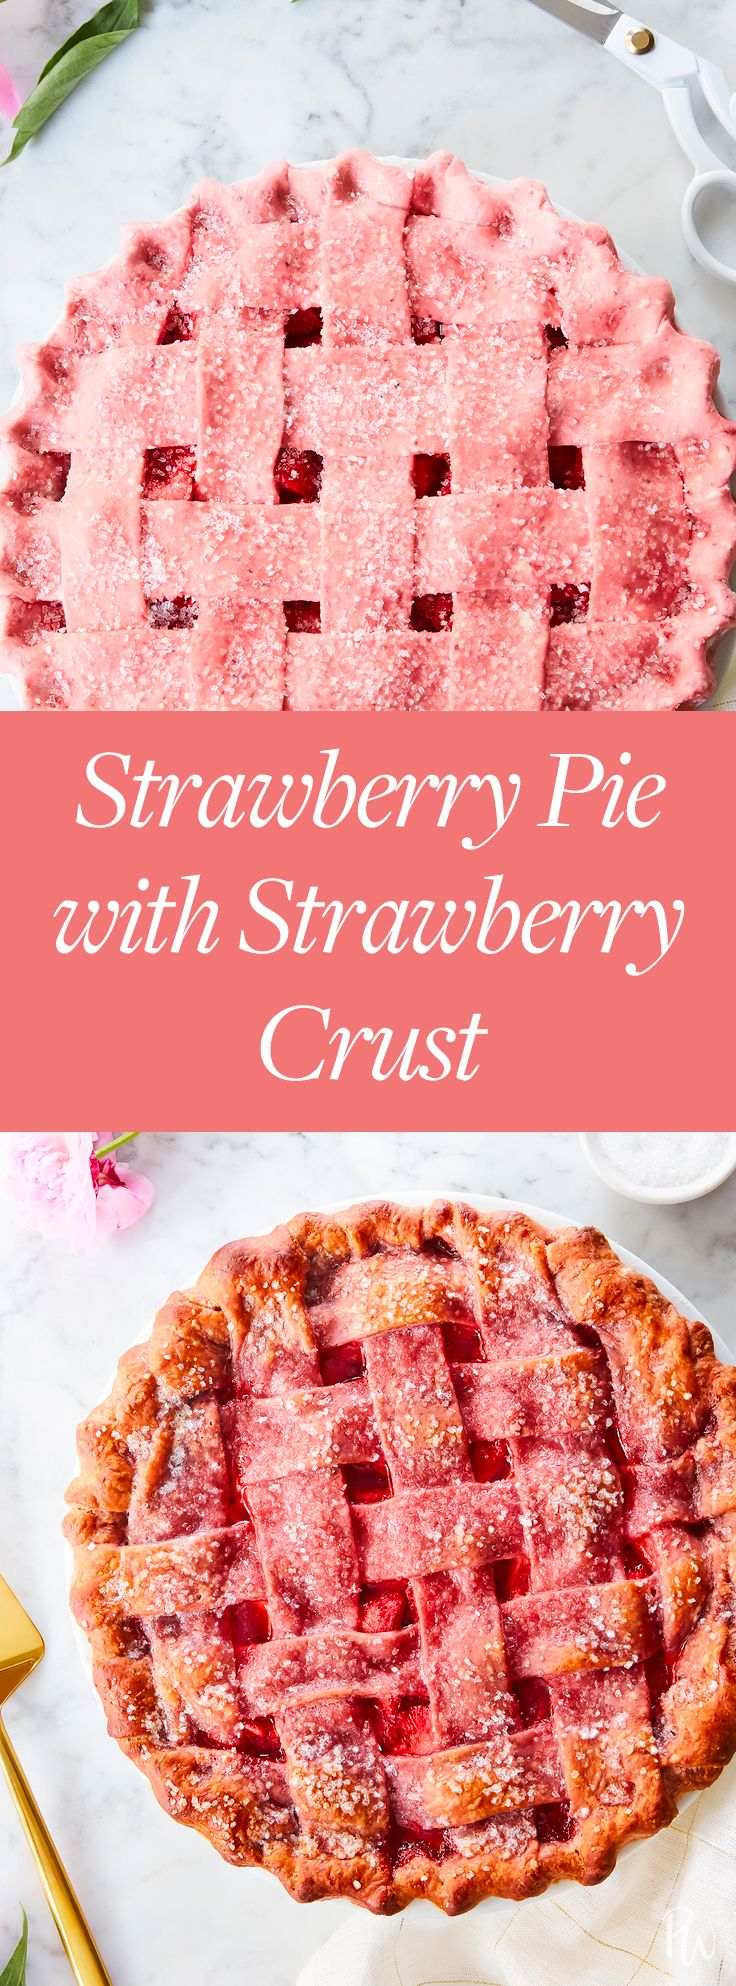 Strawberry Pie with Strawberry Crust Strawberry Pie with Strawberry Crust